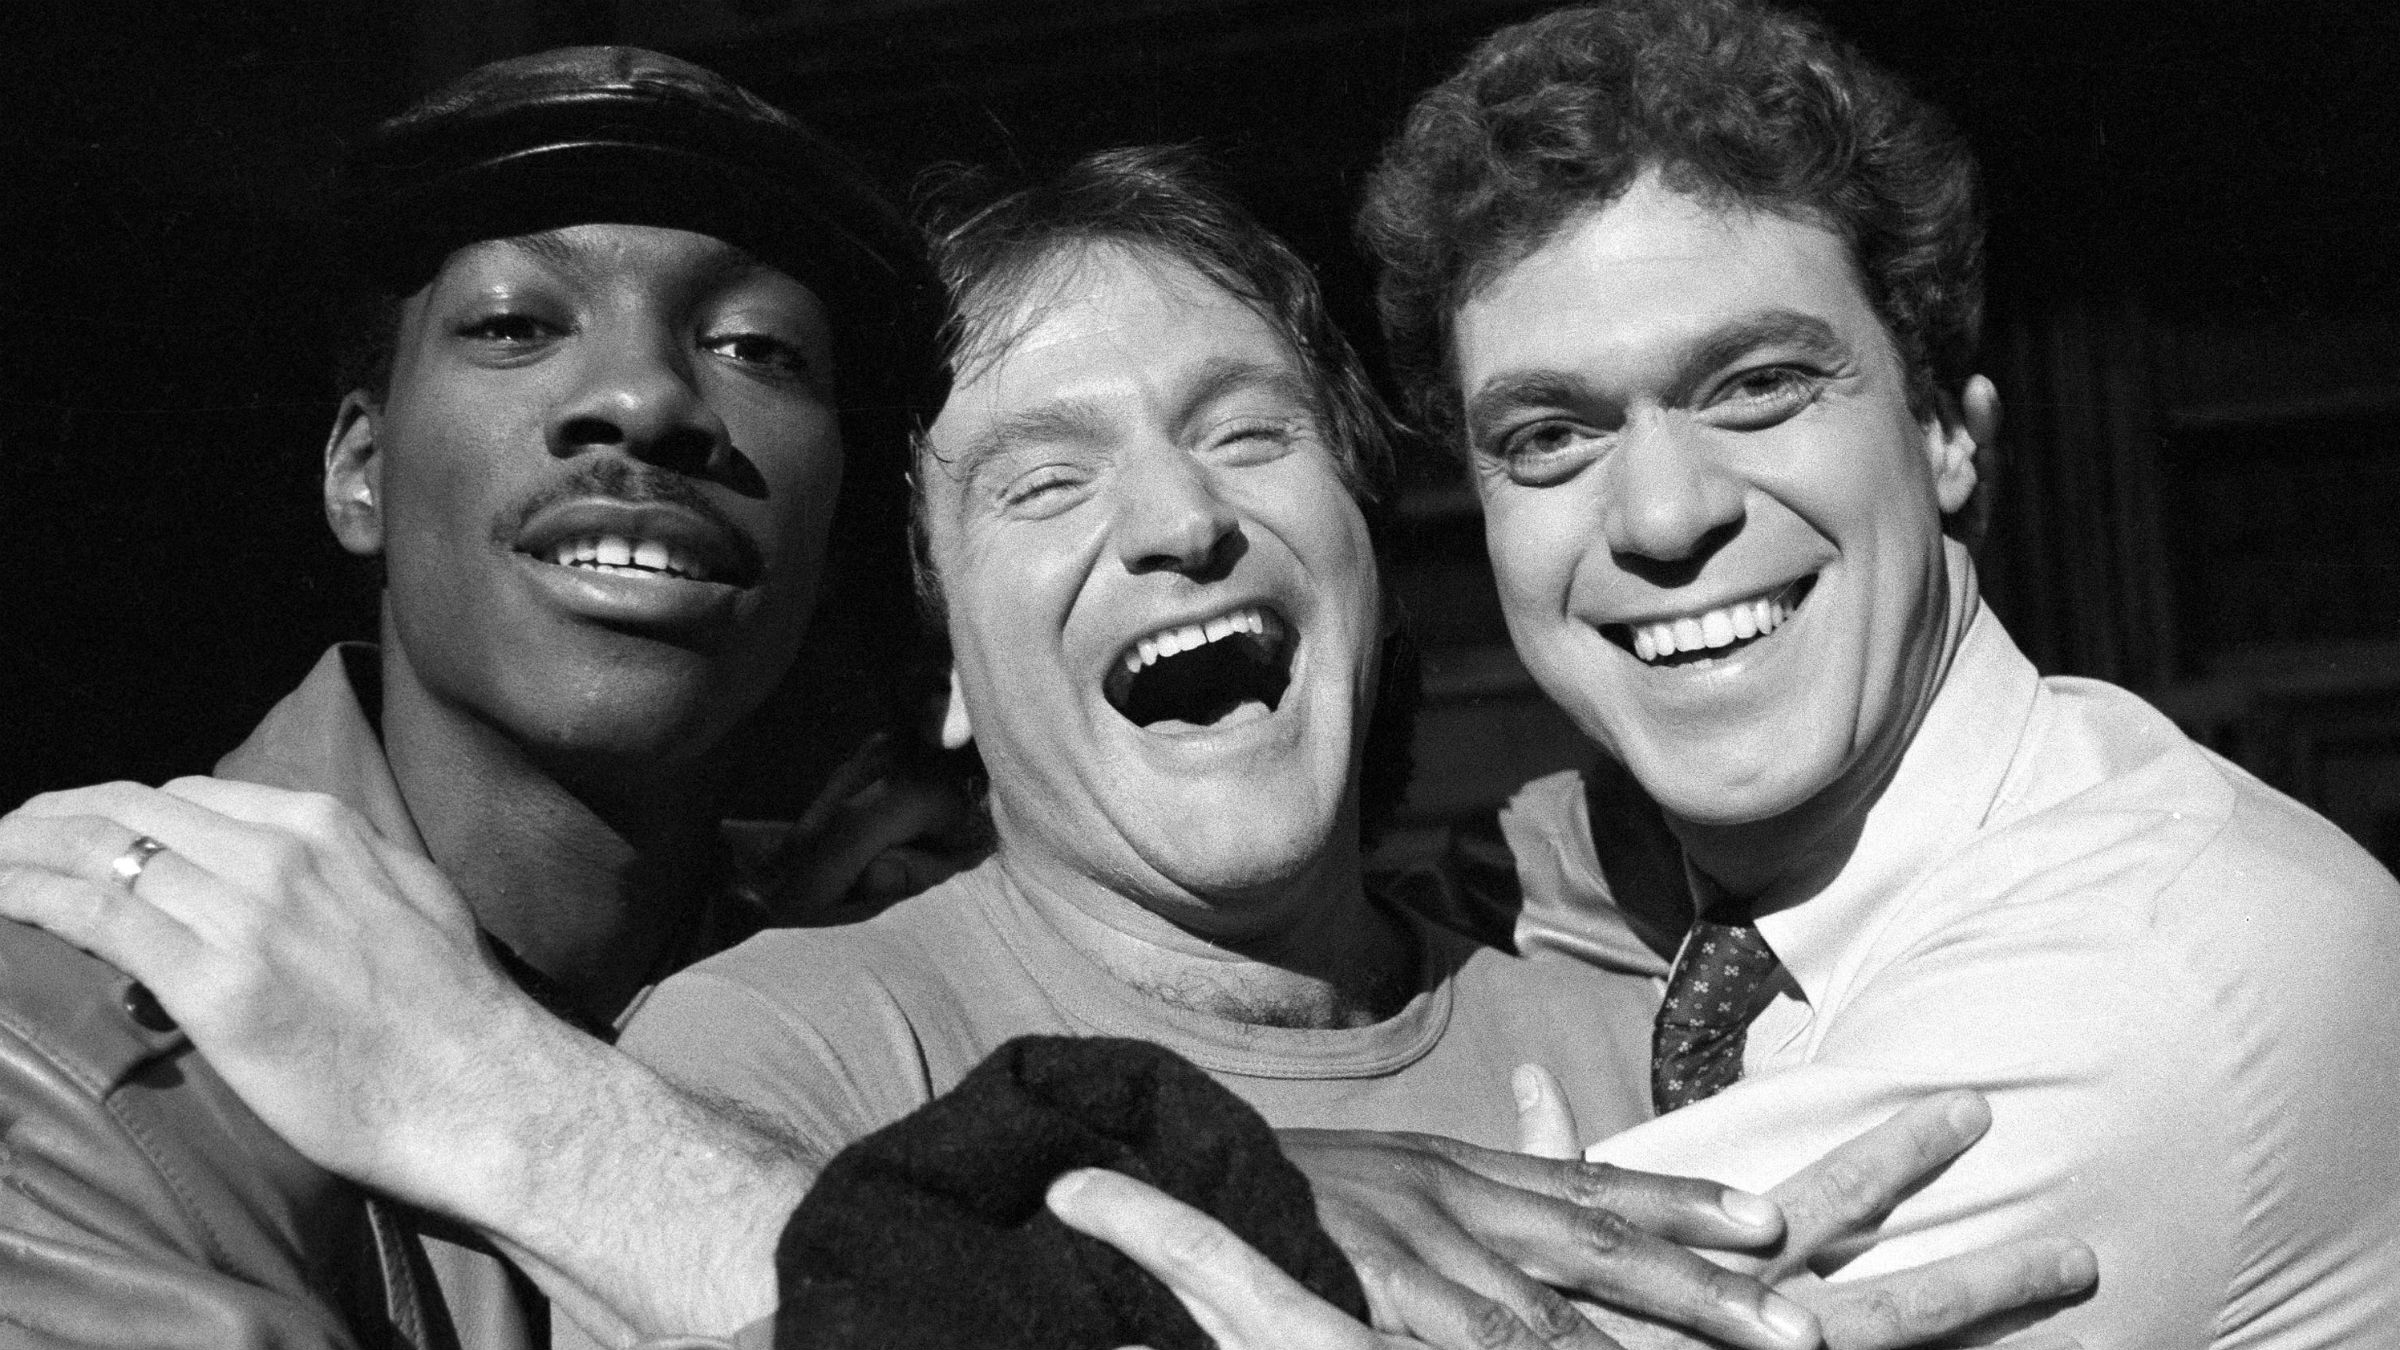 Robin Williams, center, takes time out from rehearsal at NBC's Saturday Night Live with cast members Eddie Murphy, left, and Joe Piscopo, Feb. 10, 1984. Williams will appear as guest host on the show. (AP Photo/Suzanne Vlamis)